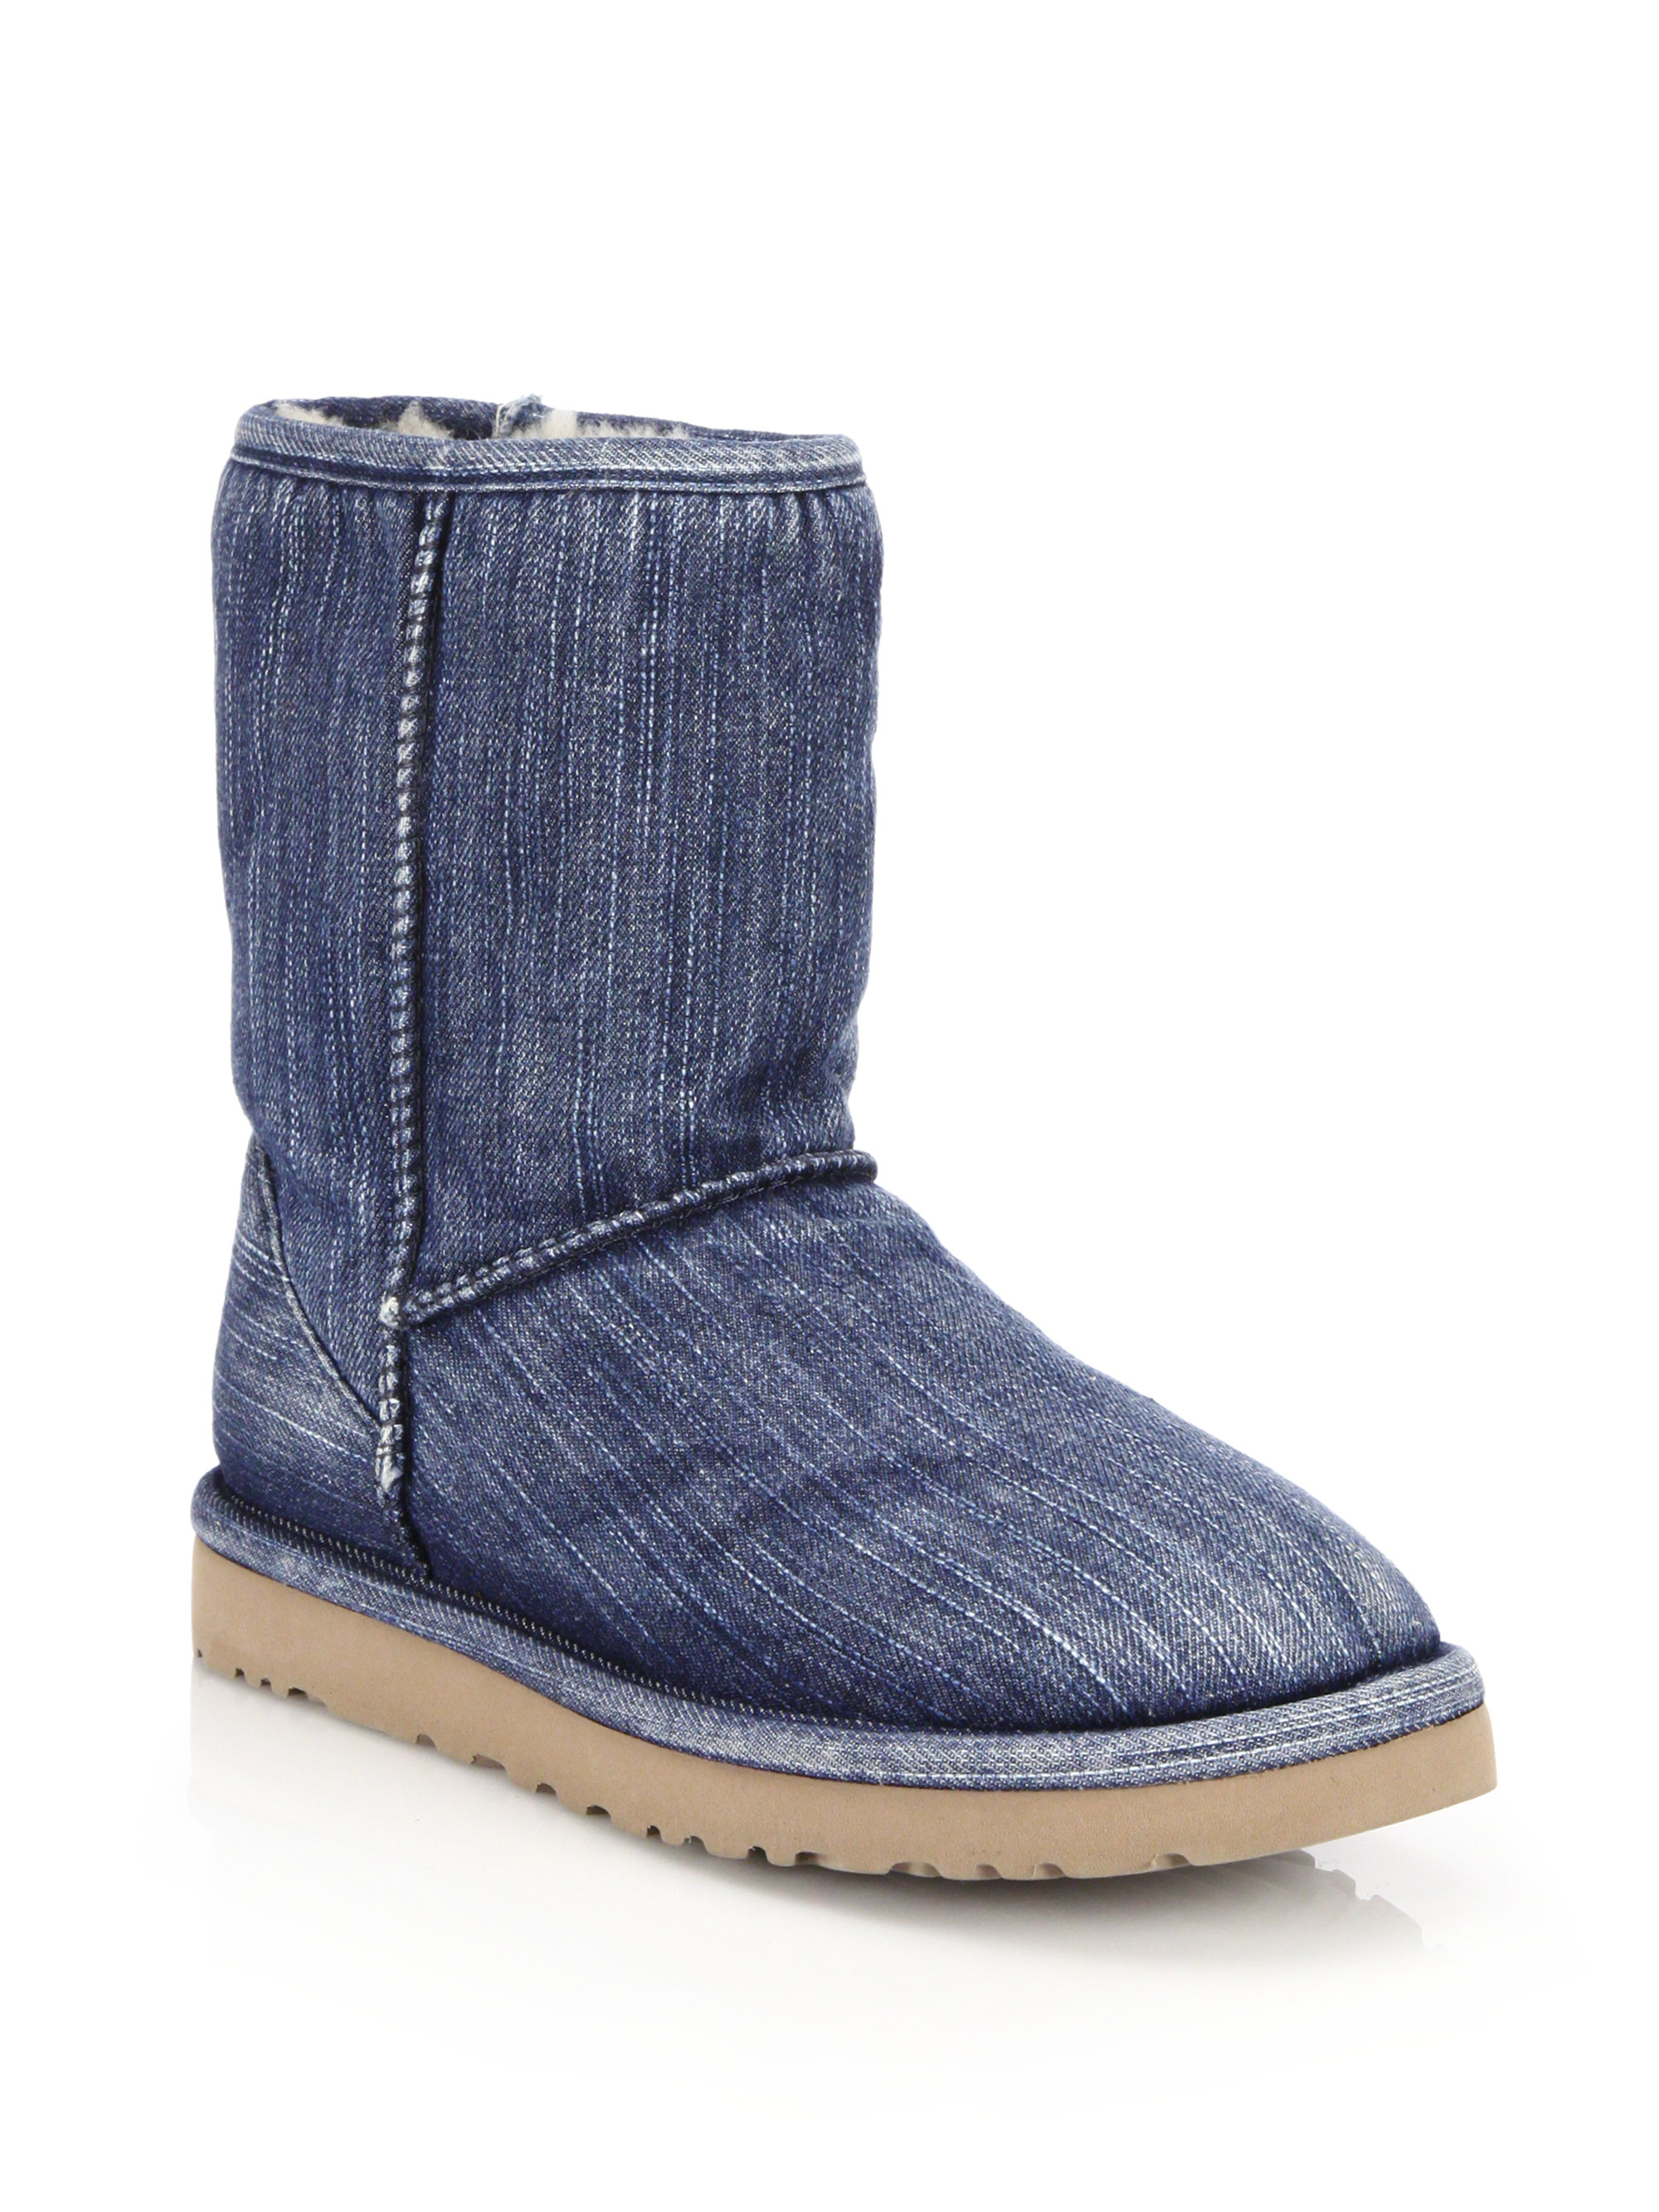 UGG Women's Classic Short Washed Denim Boot,Navy,US 6 M. by UGG. $ $ FREE Shipping on eligible orders. 5 out of 5 stars 1. men's style with the handsome Ascot Washed Denim slipper by UGG. UGG Kids T Rahjee Patches Rain Boot. by UGG. $ $ 44 95 Prime. FREE Shipping on eligible orders.